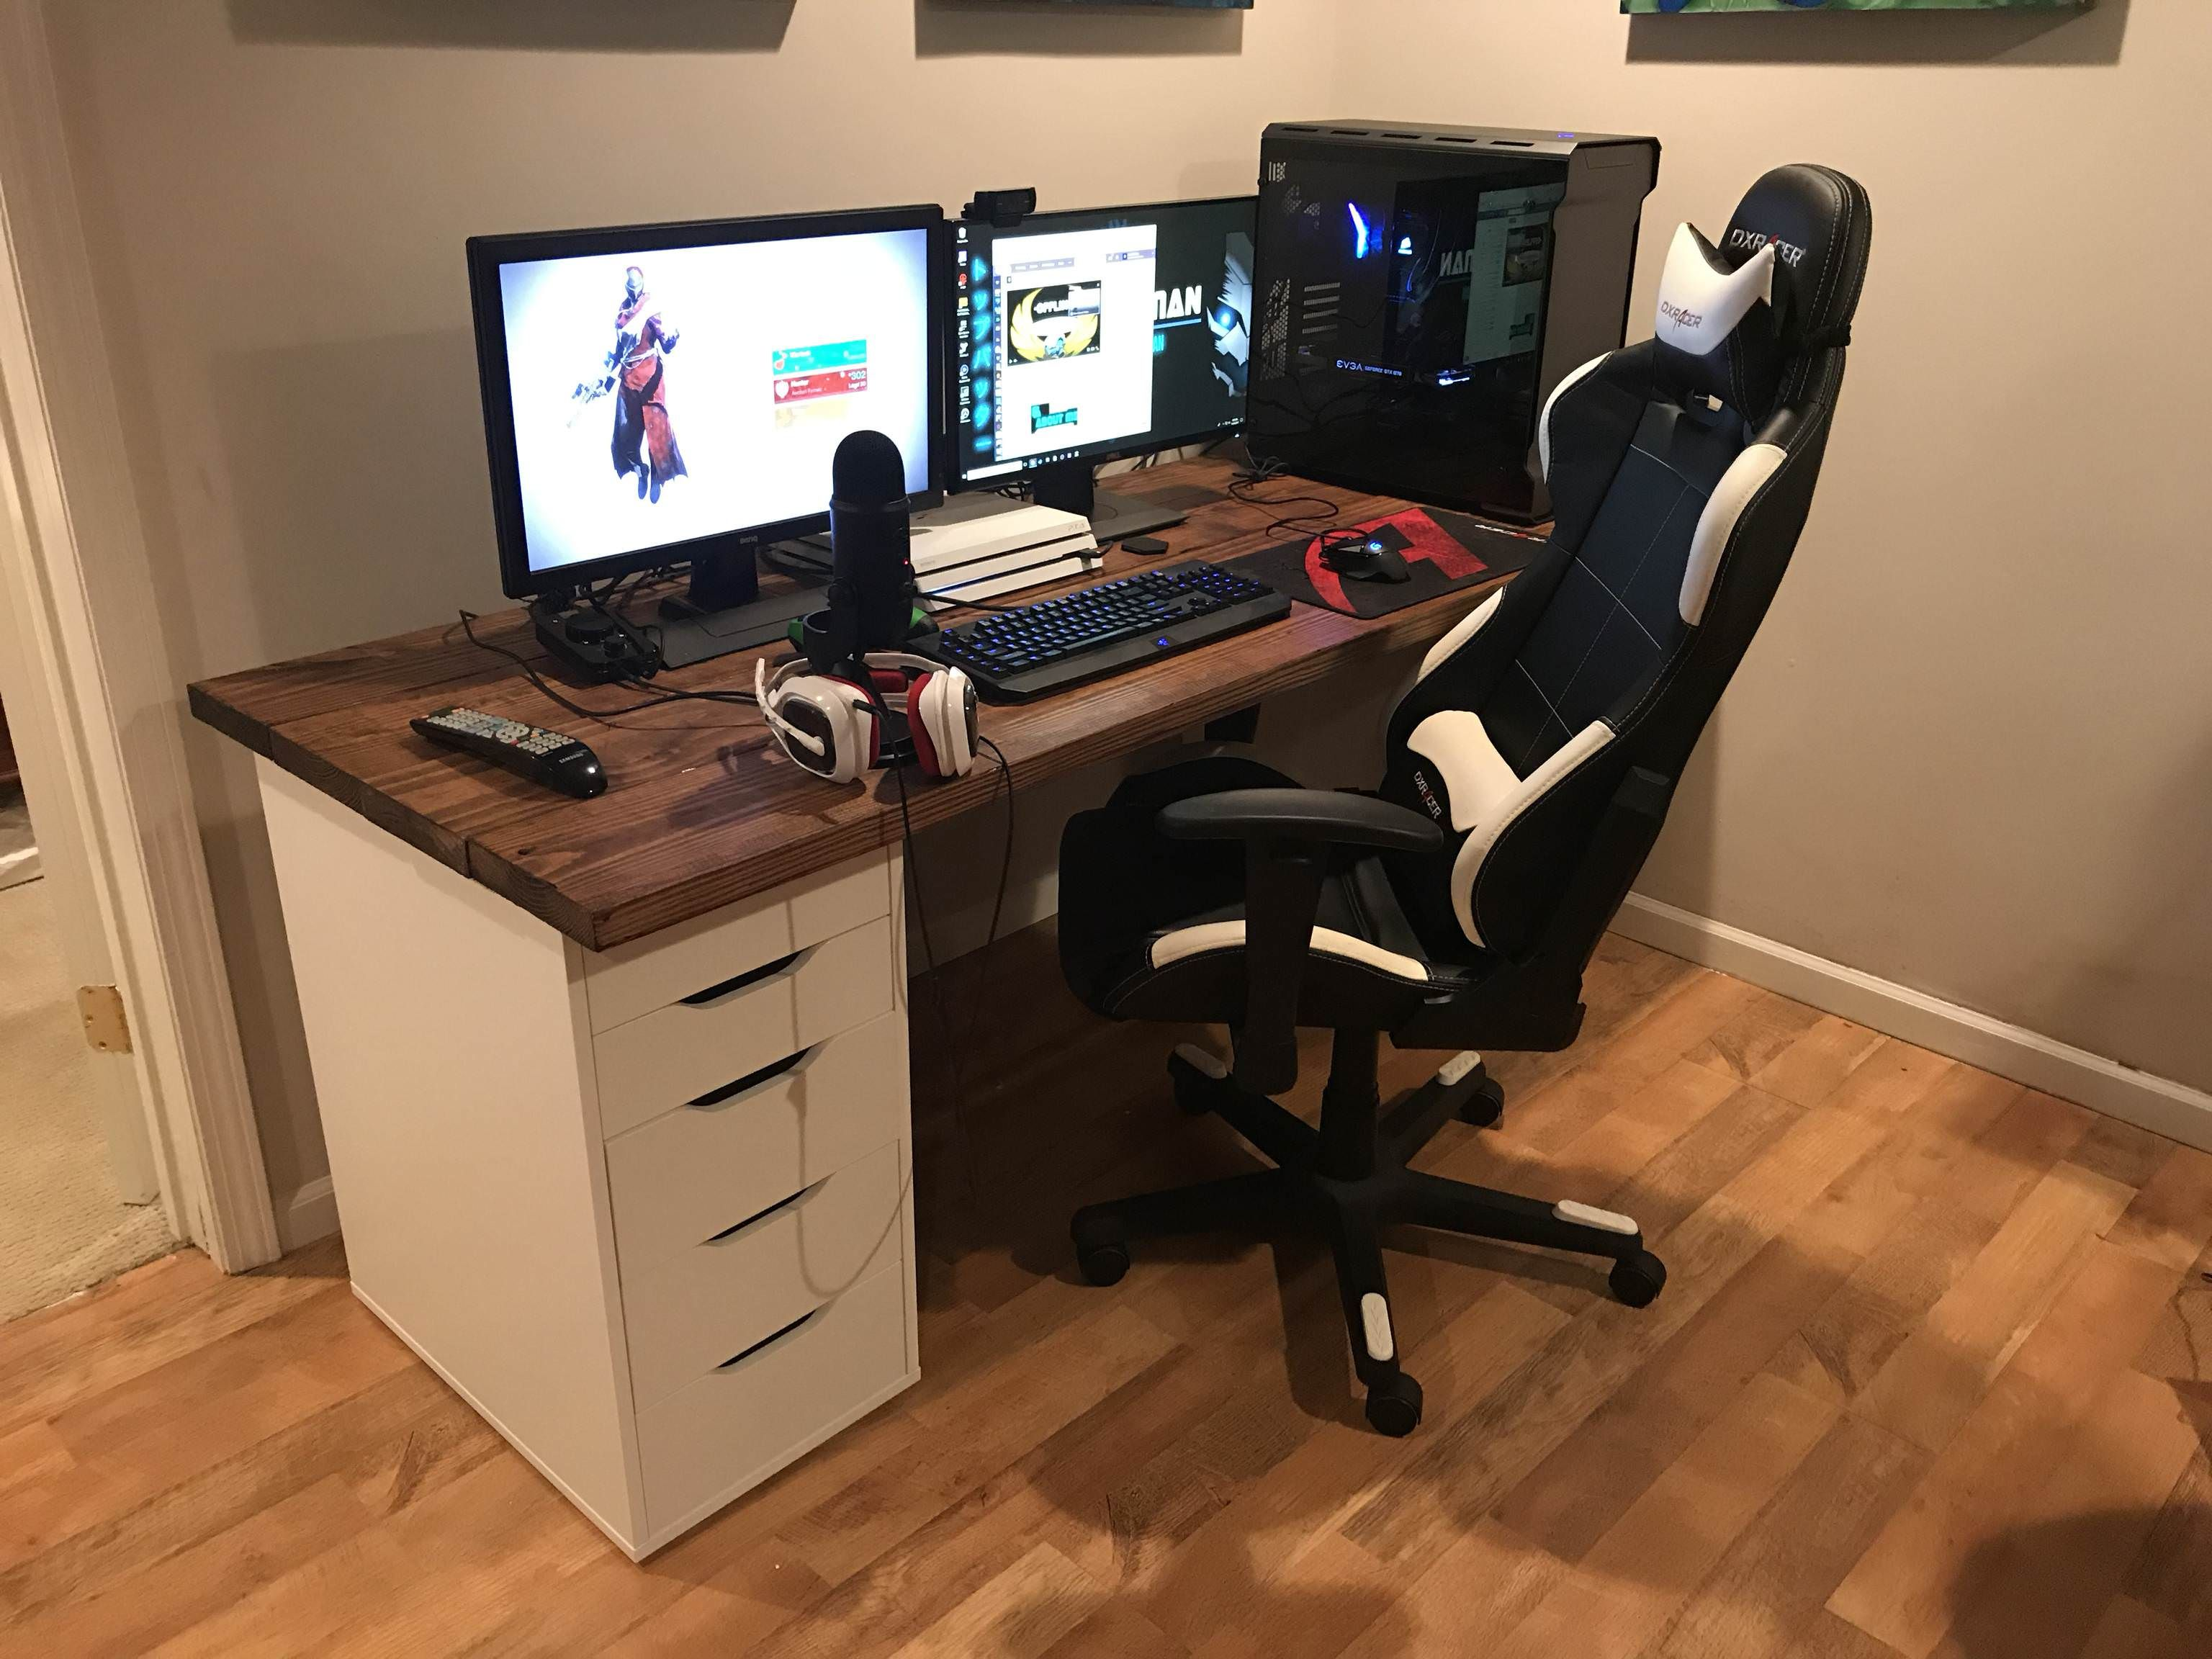 Moved From My Old Setup In The Living Room To A New Setup In My Gaming Room Gaming Room Setup Game Room Design Game Room Living room gaming pc